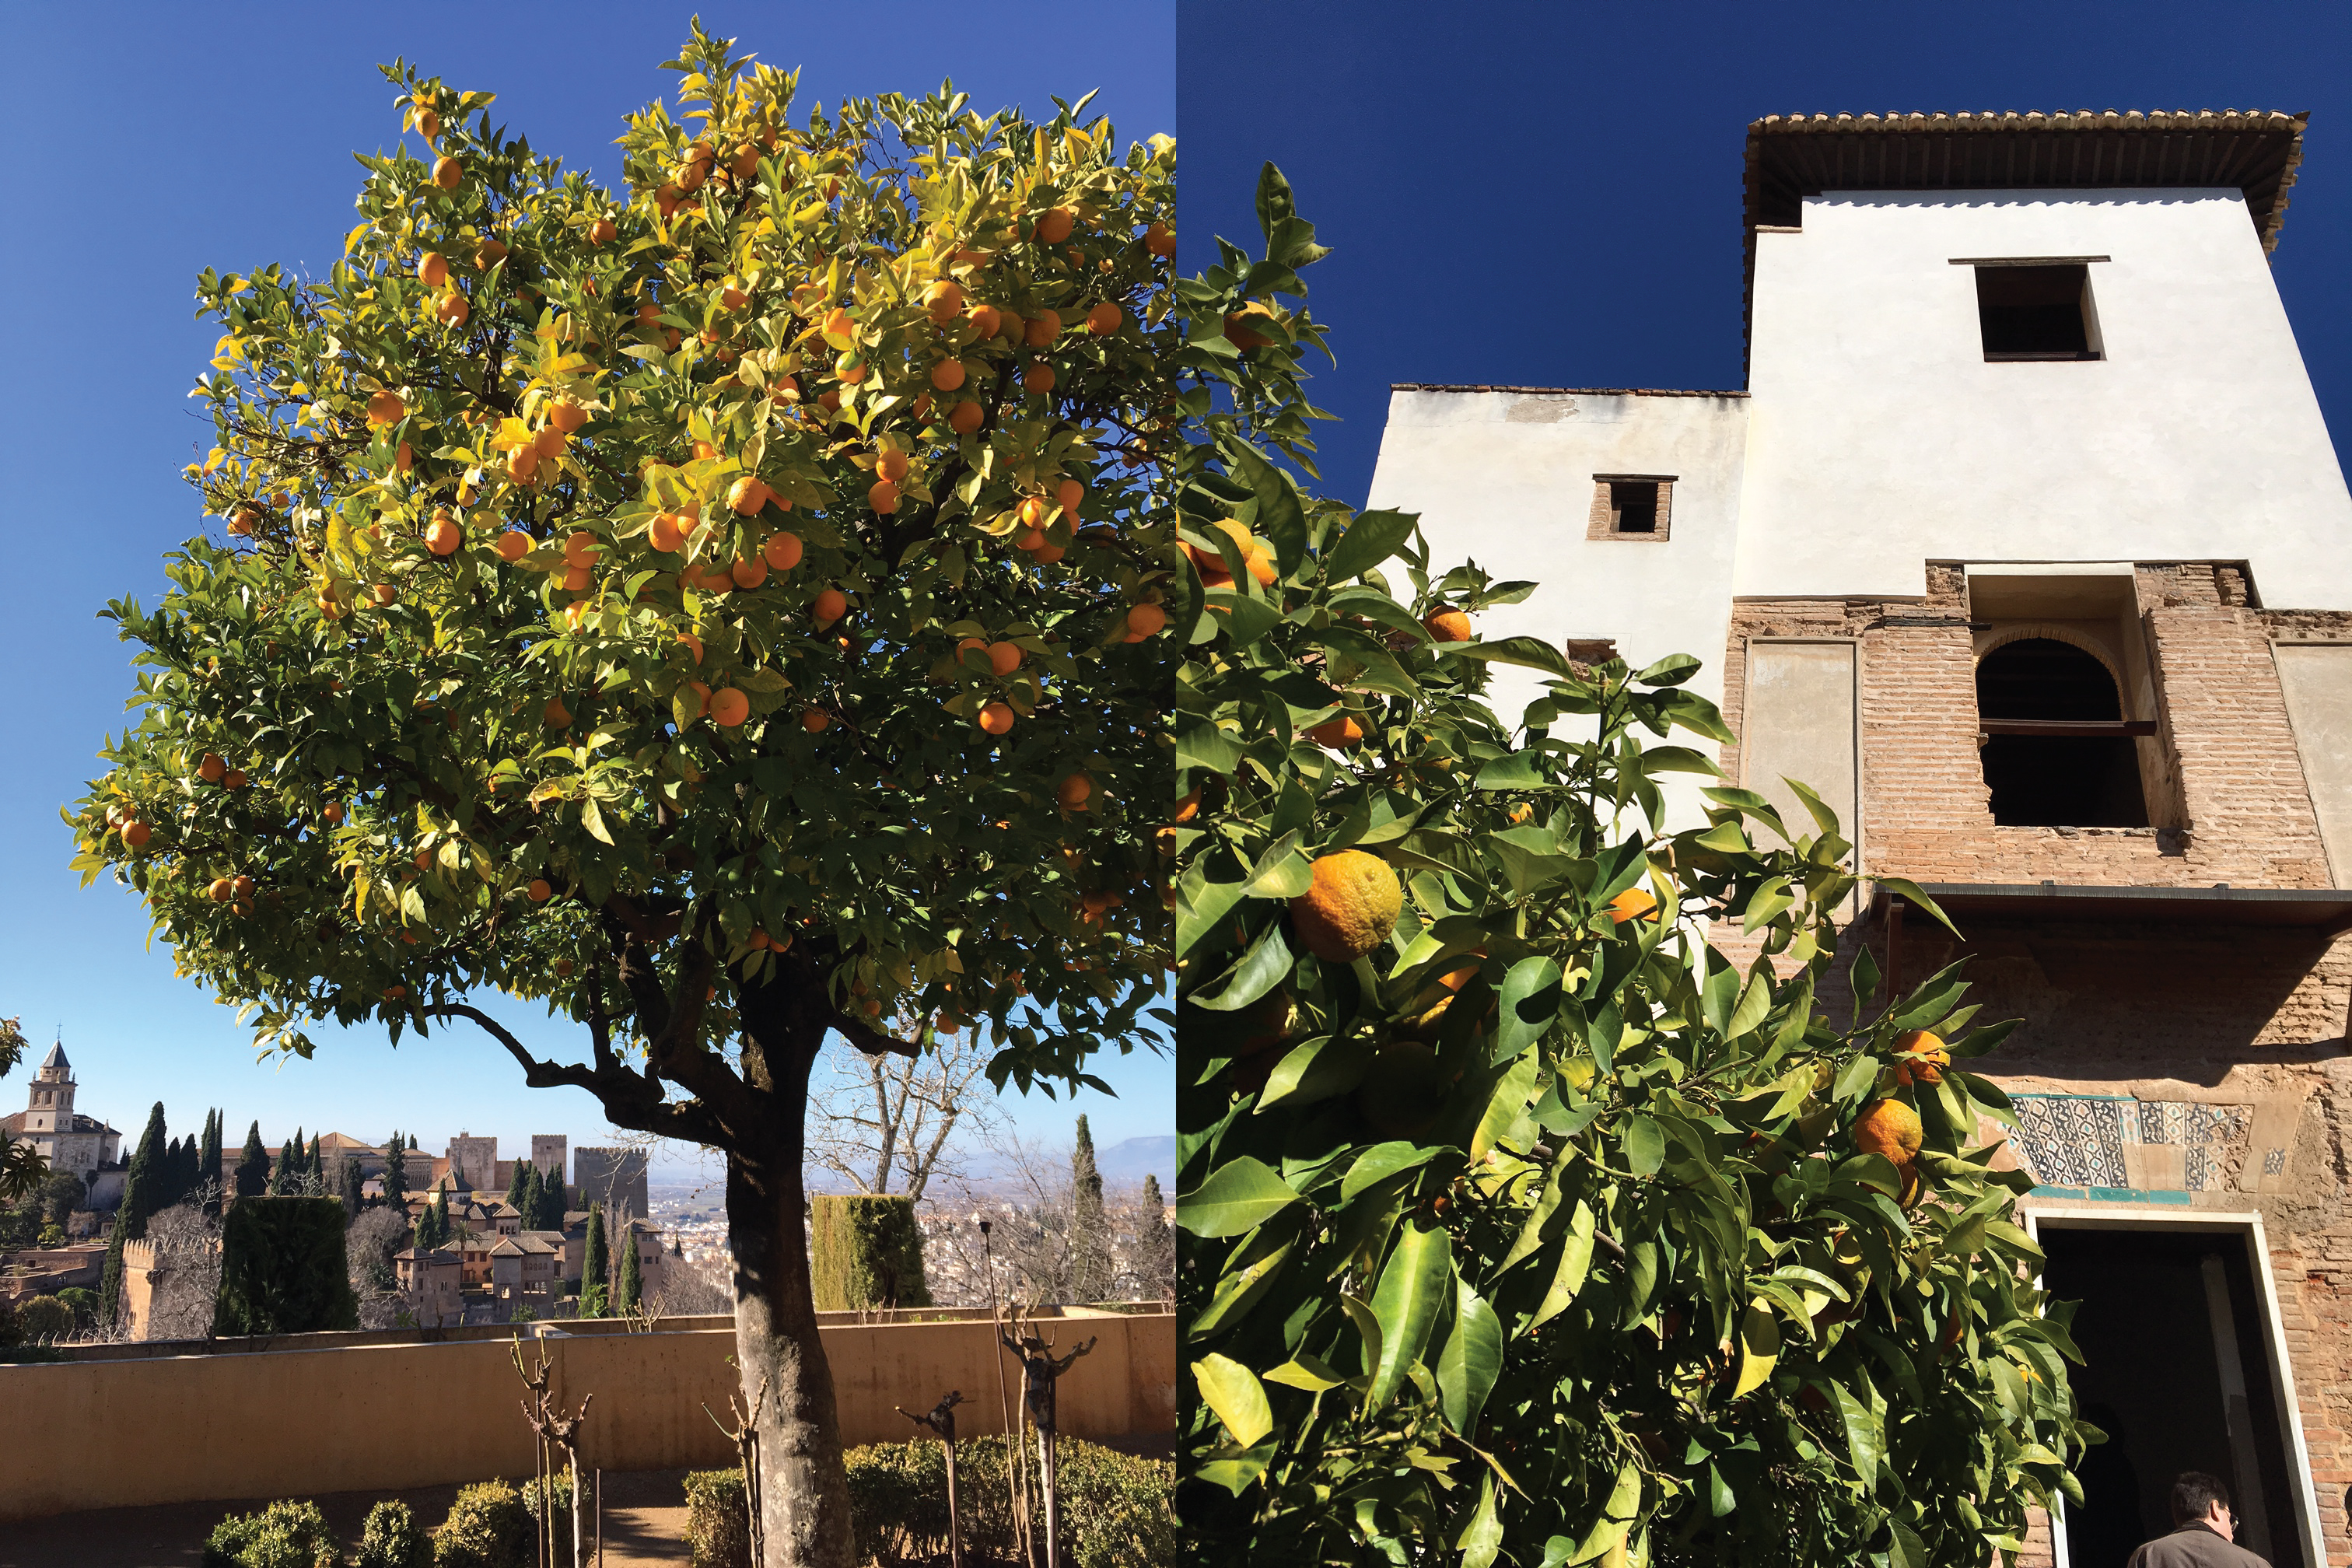 My favorite: these lovely orange trees. A symbol of Granada.